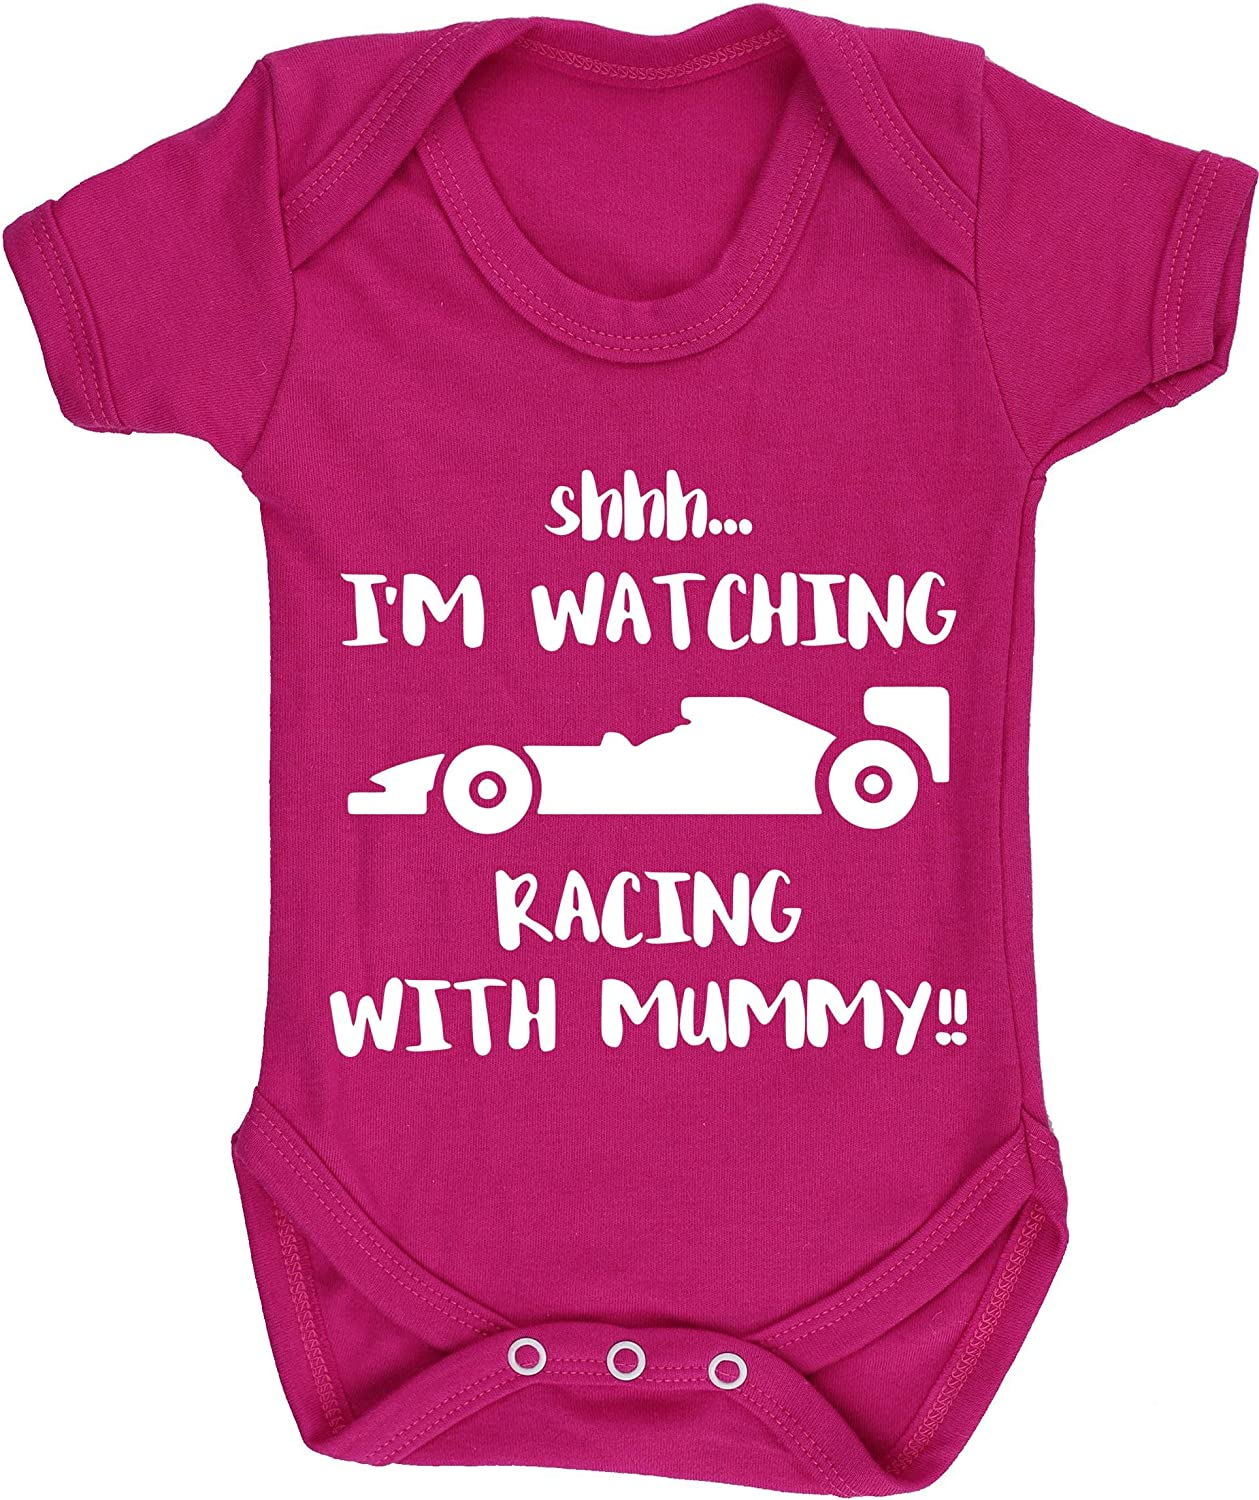 Baby Romper All in one Piece Unisex Hippowarehouse Shhh Im Watching Racing with Daddy!